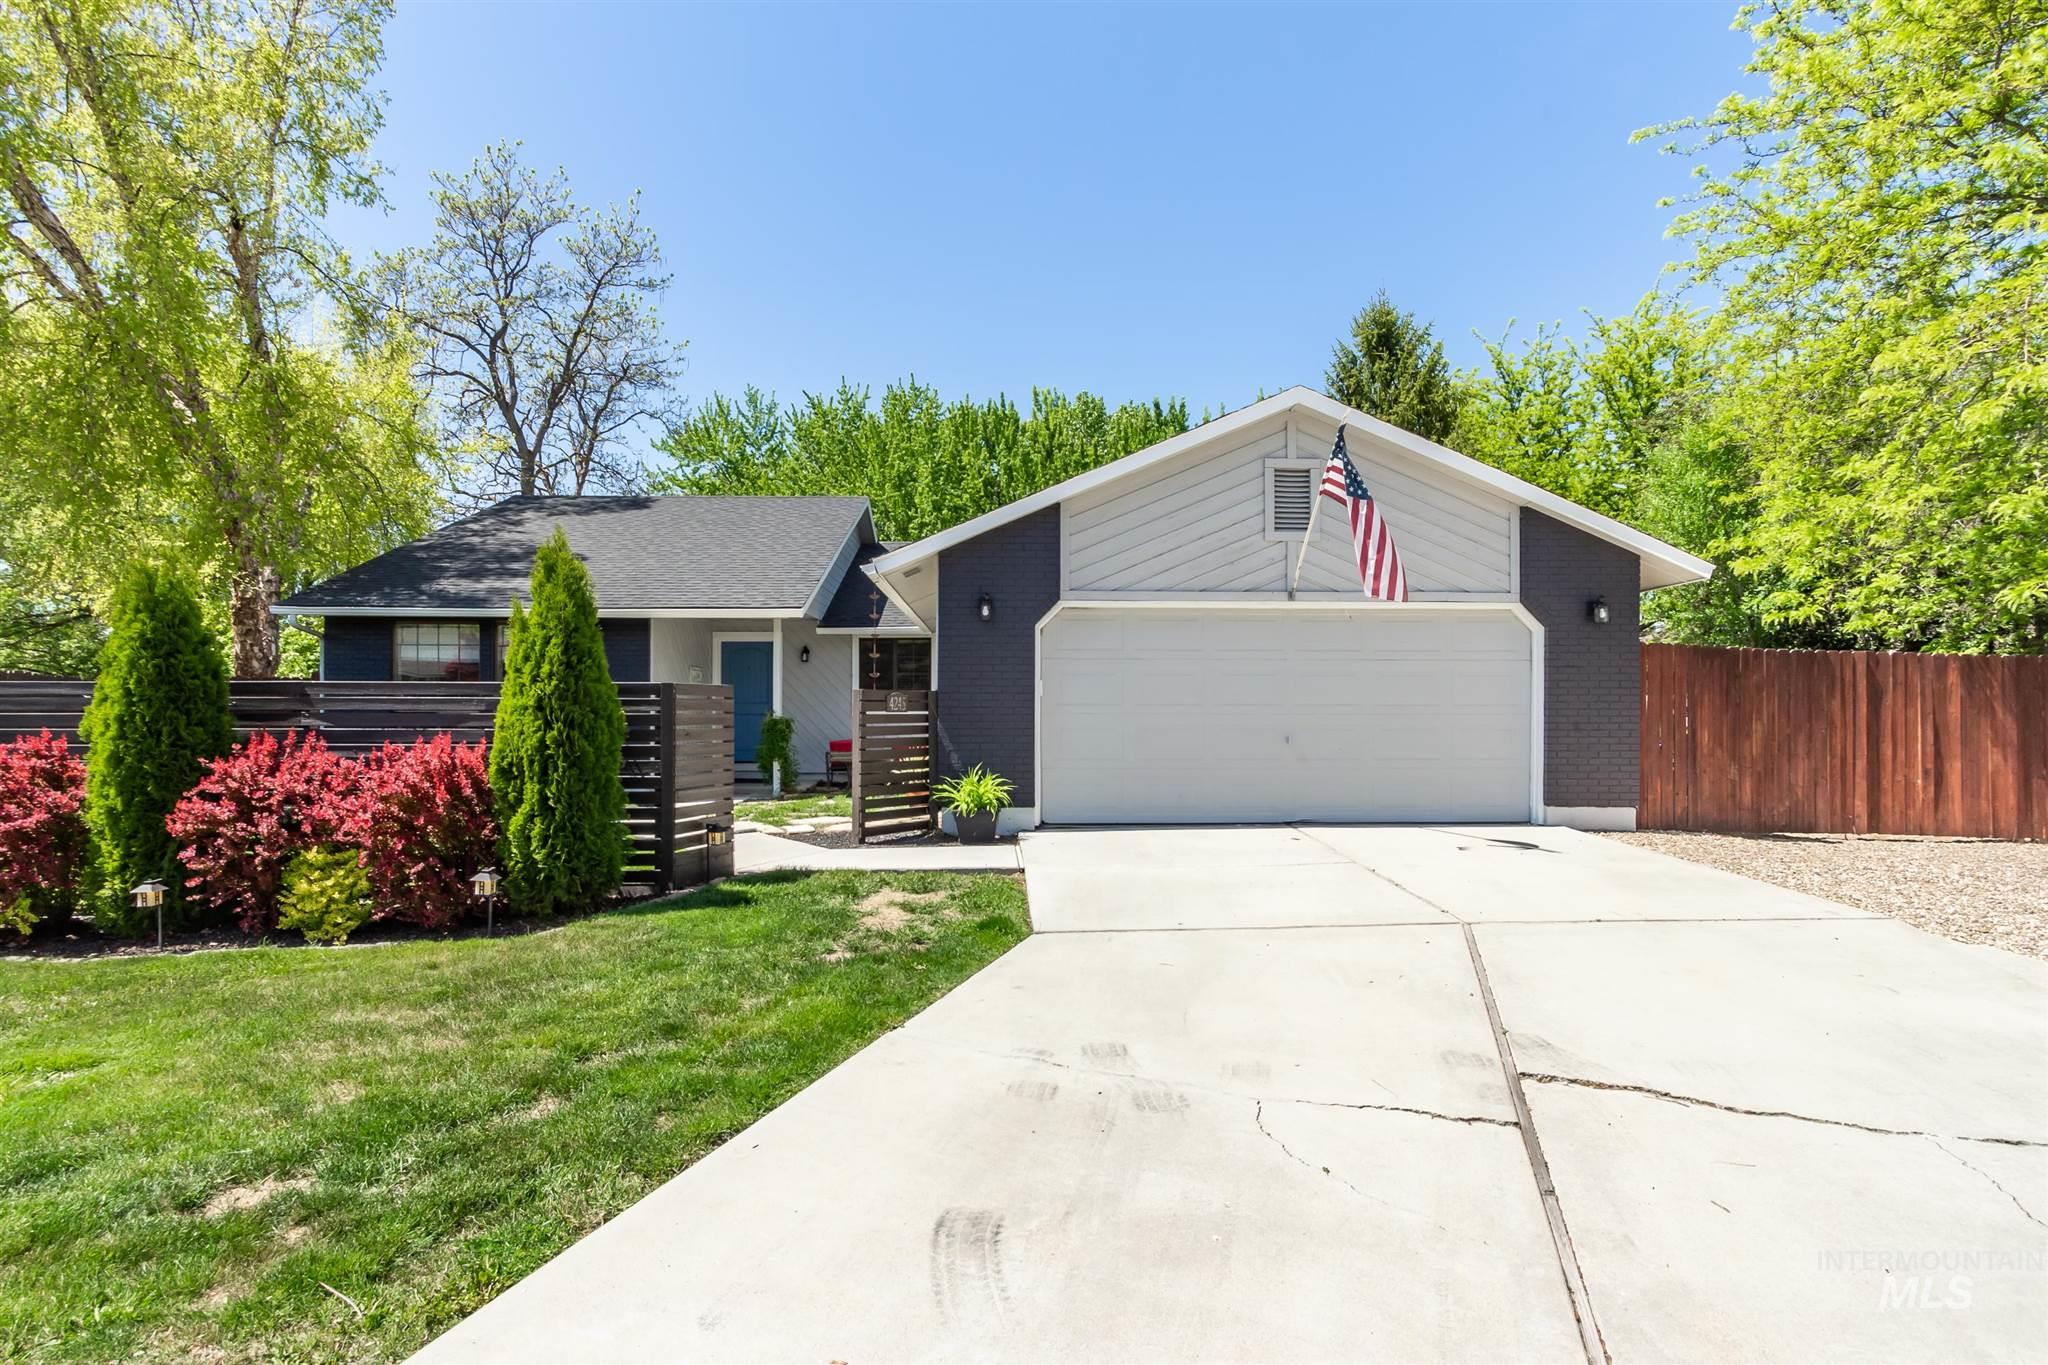 4245 Pennfield Place Property Photo - Boise, ID real estate listing